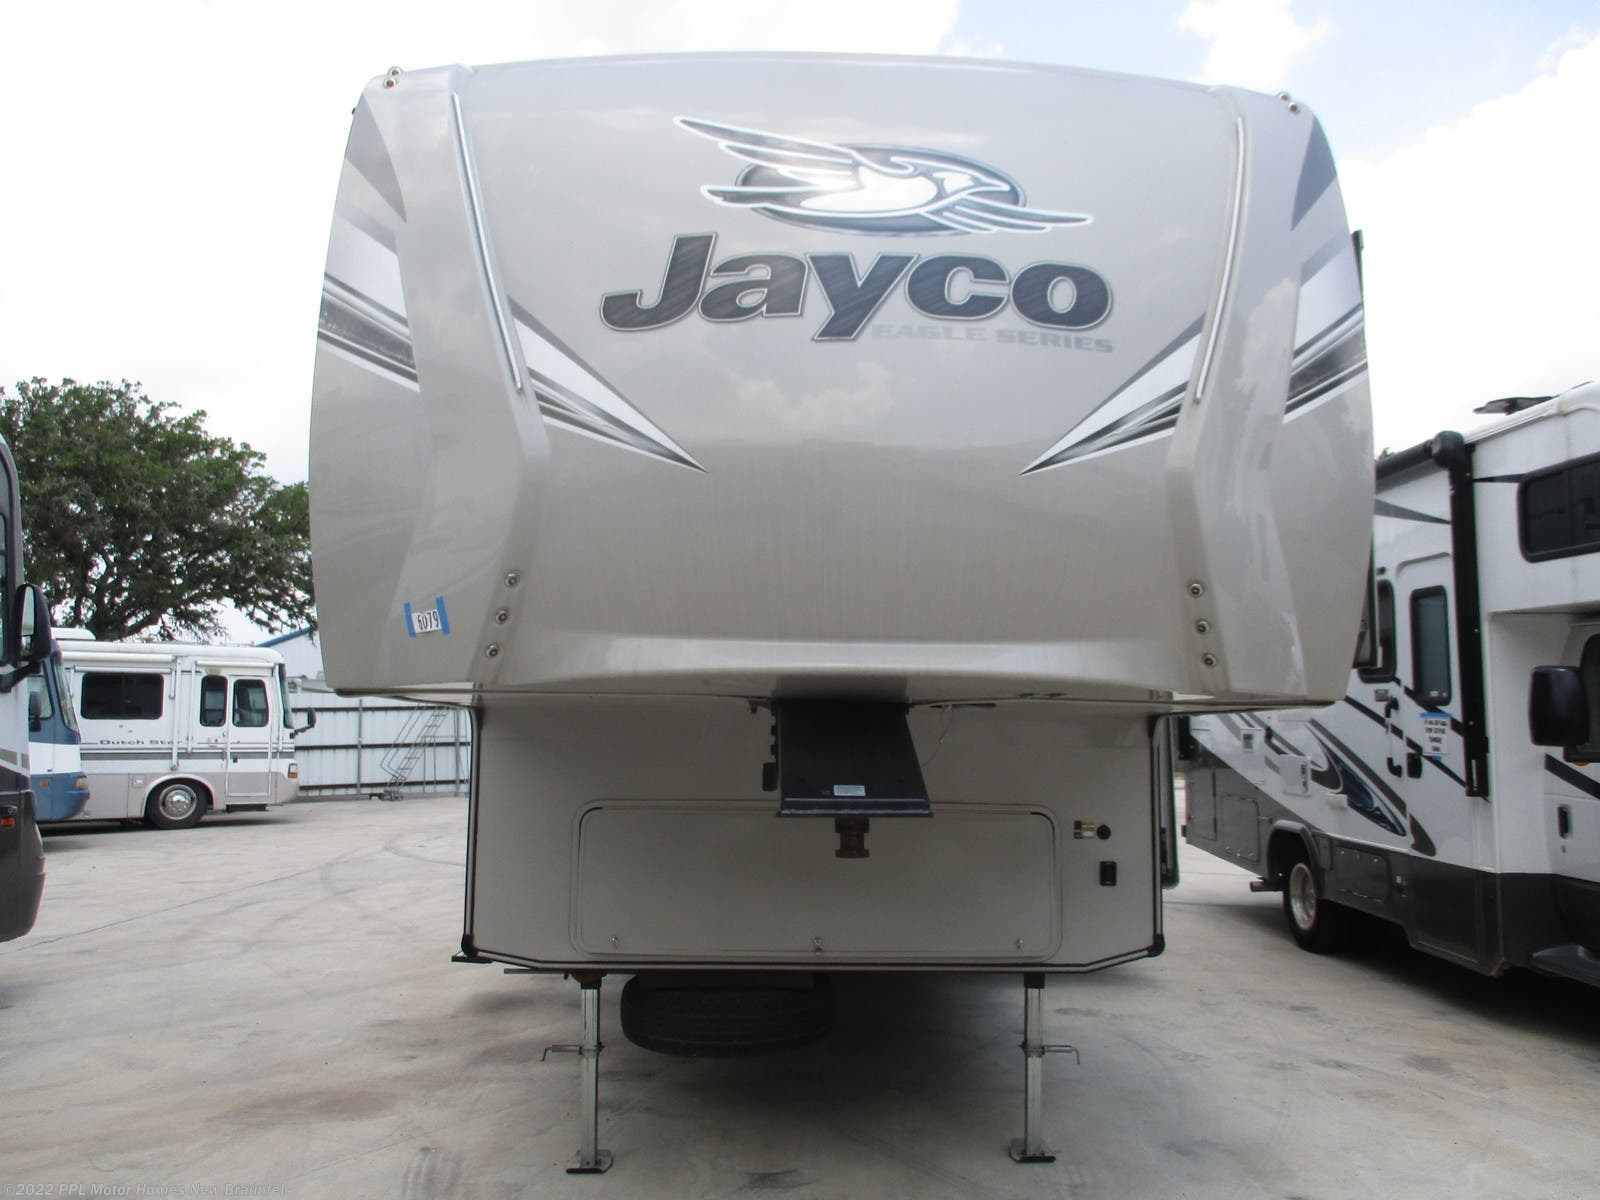 Lp Gas Cooktops For Rv On Sale Now Ppl Motor Homes >> 2018 Jayco Rv Eagle 29 5 Bhok For Sale In New Braunfels Tx 78130 F173nb